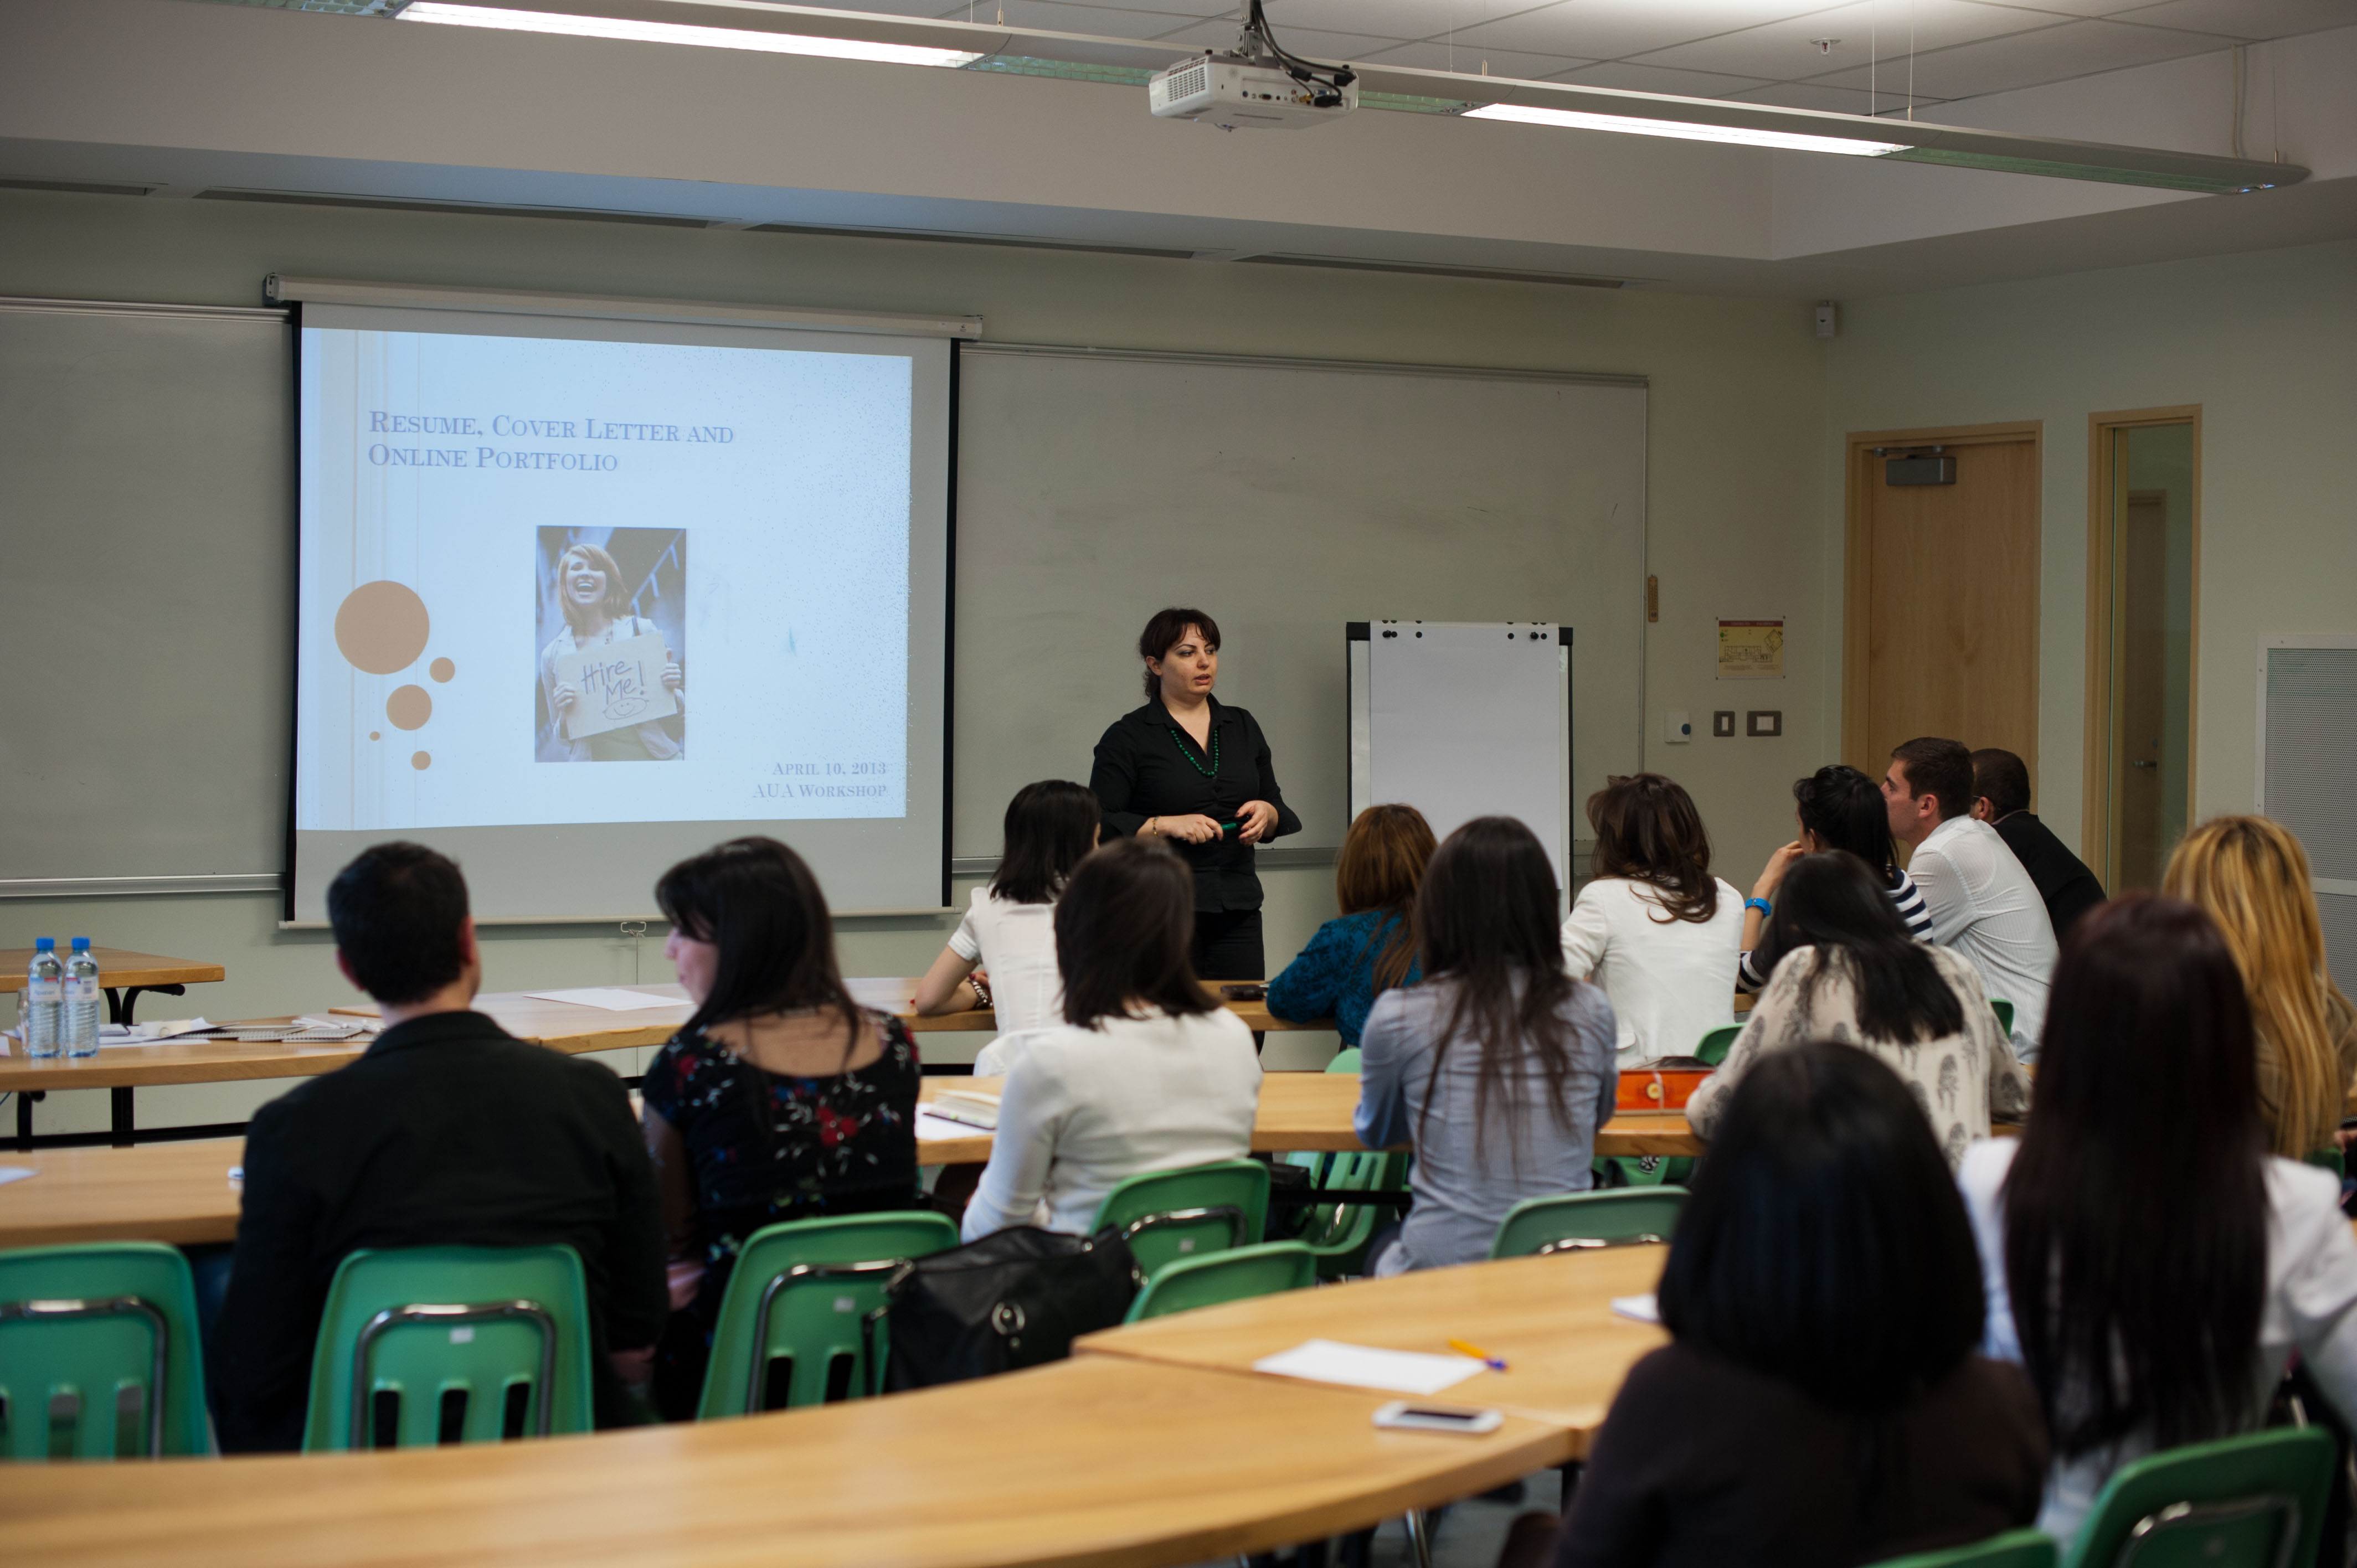 aua alumni career development office hosts job market workshops the first session titled the first impression resumes cover letters and online portfolios featured